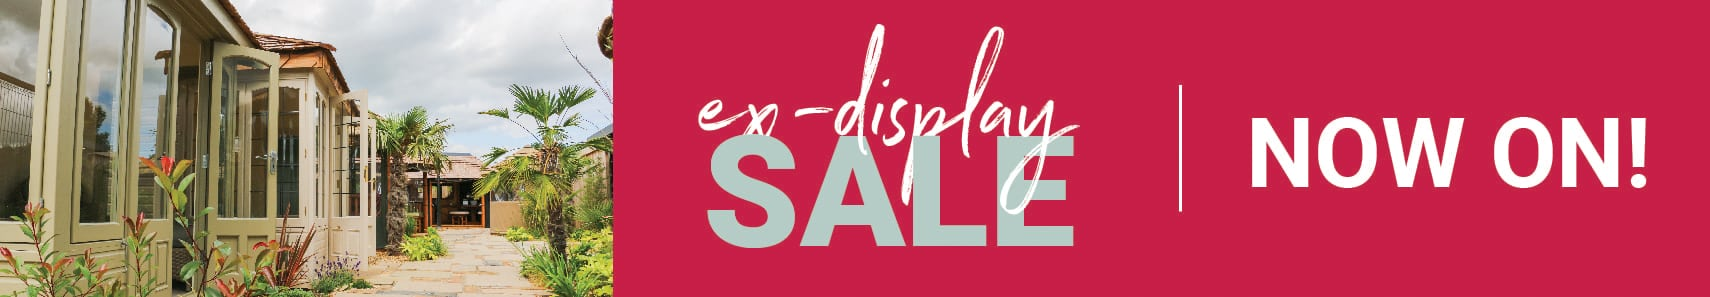 Ex-display sale now on!